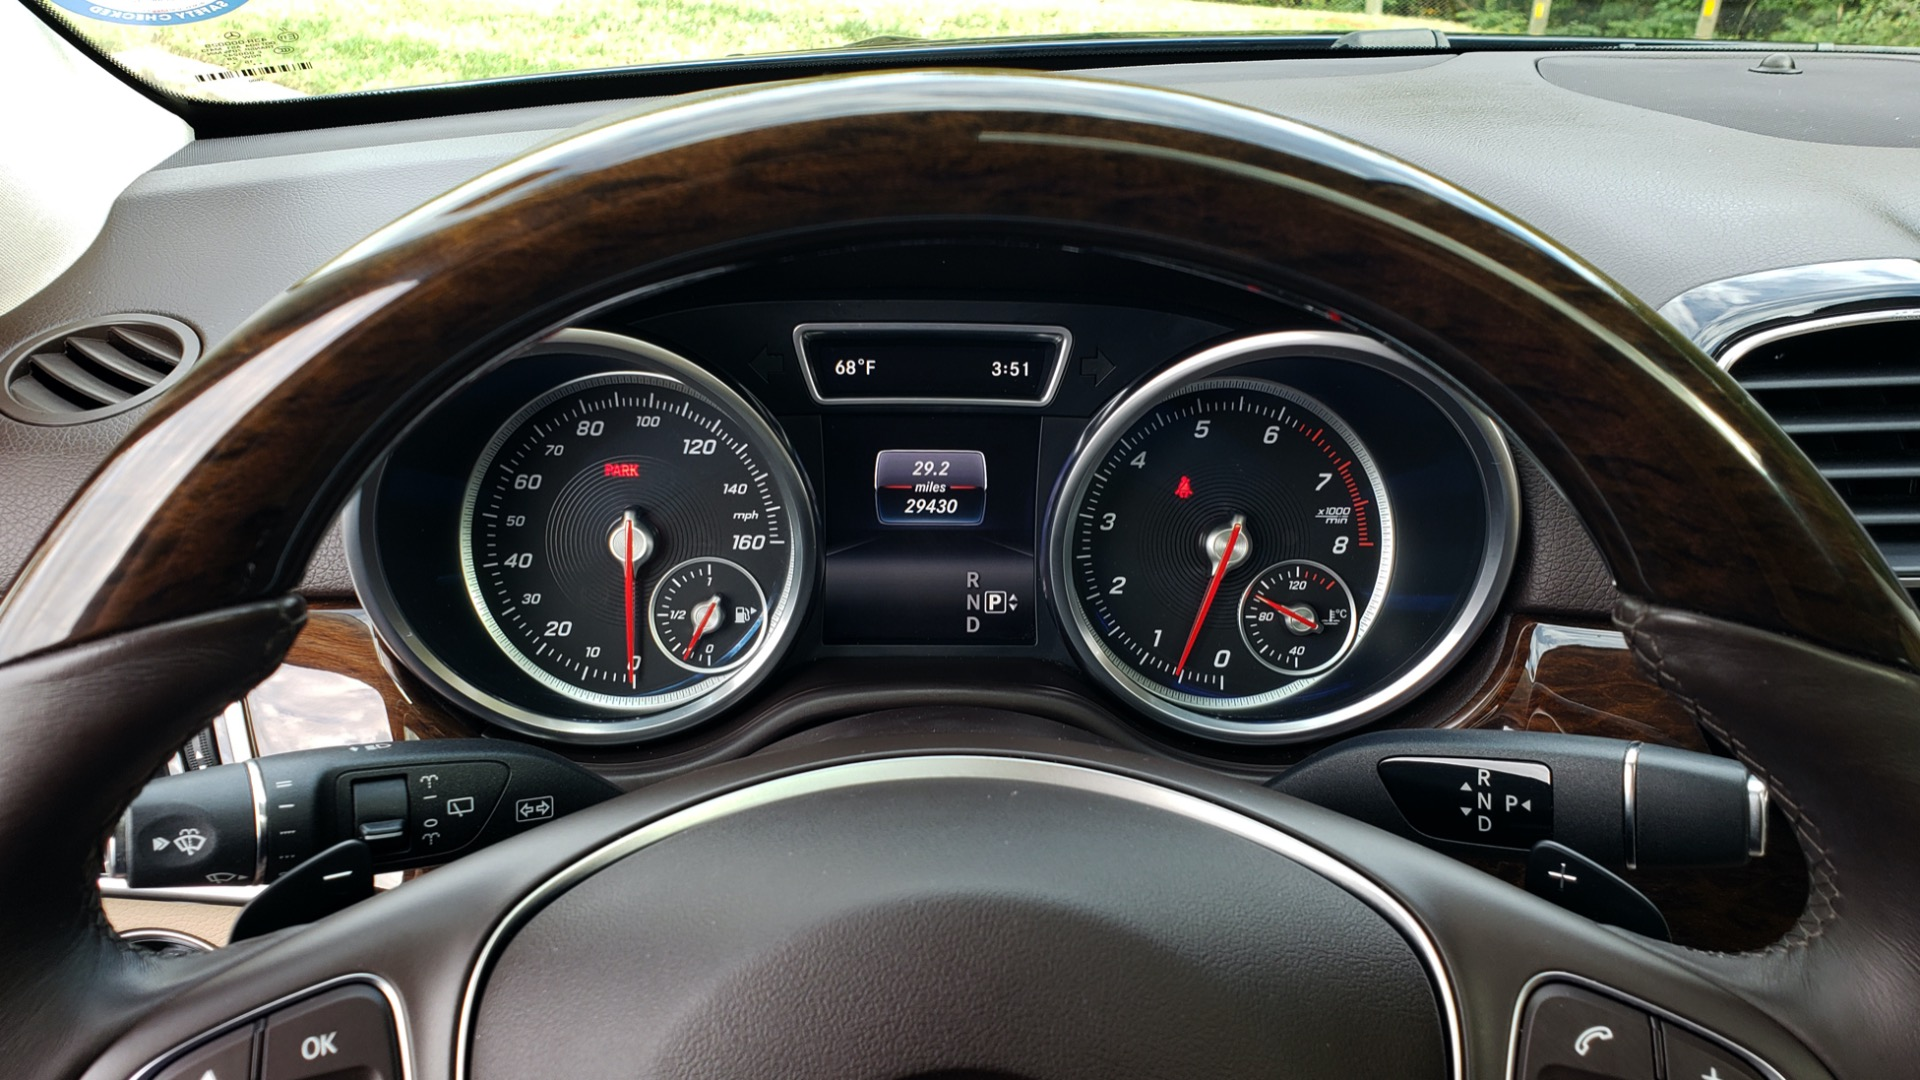 Used 2016 Mercedes-Benz GLE 350 PREMIUM / NAV / SUNROOF / BACK-UP CAMERA / LANE TRACKING for sale Sold at Formula Imports in Charlotte NC 28227 47